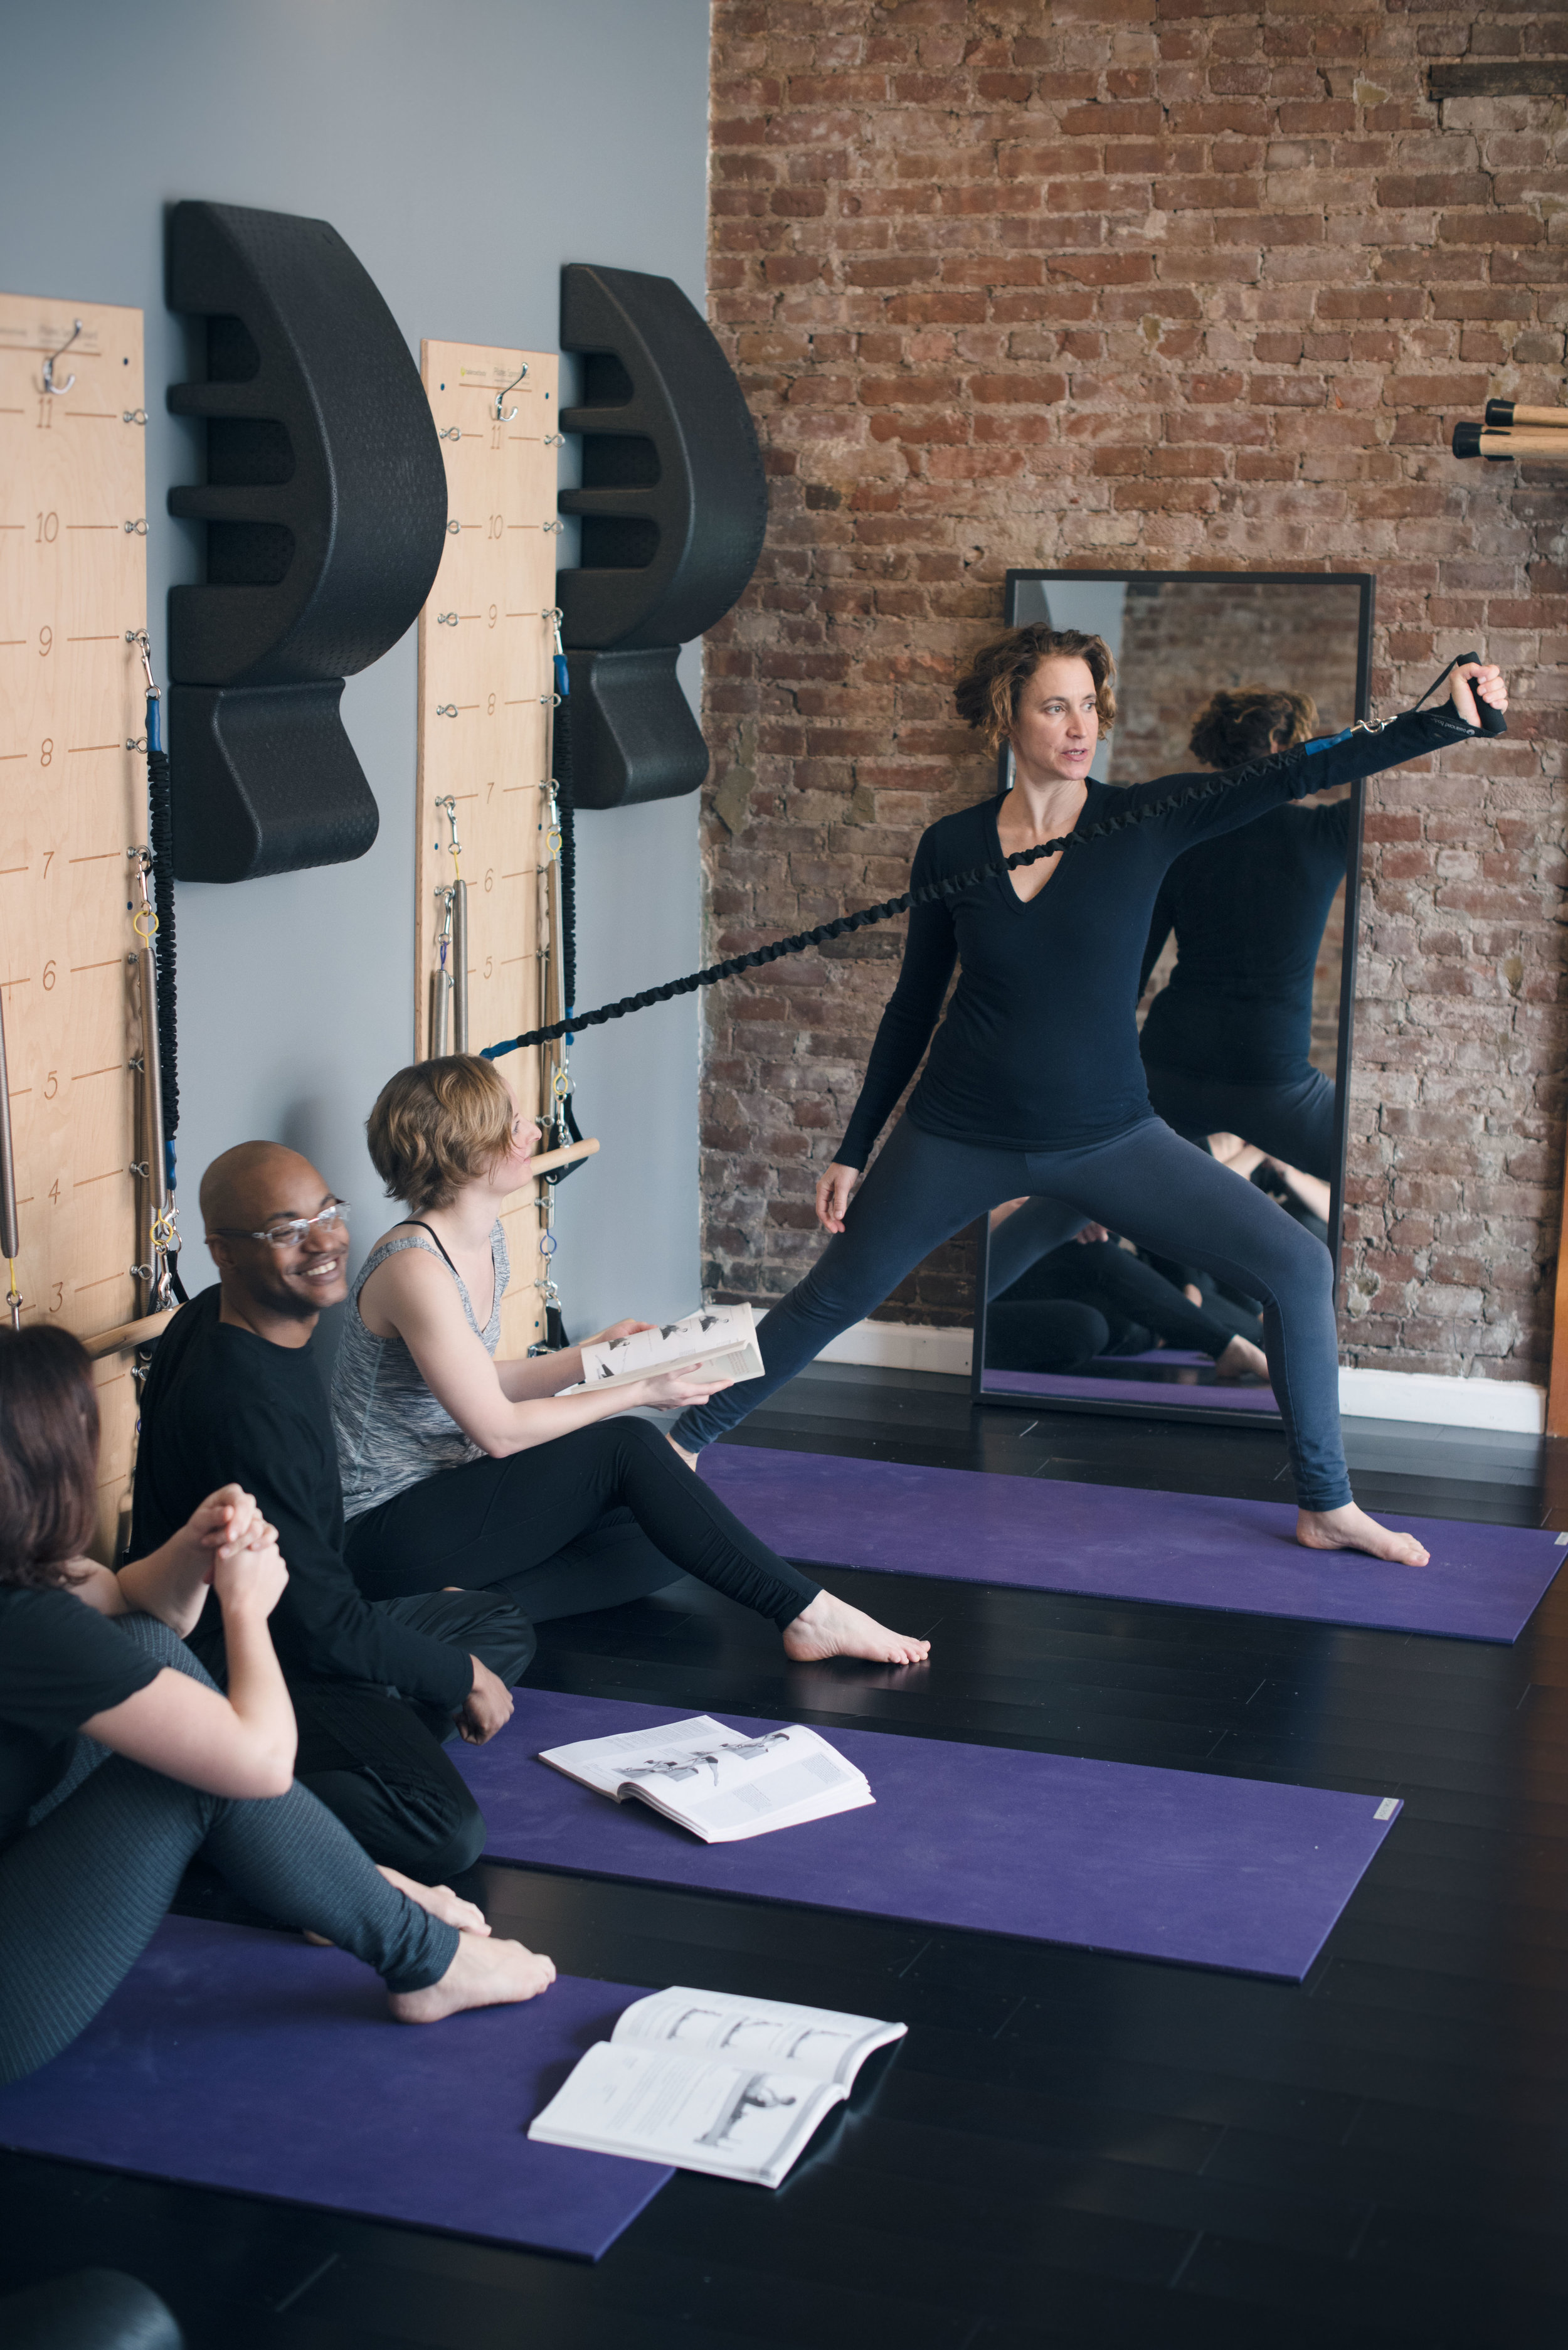 - JANUARY 25-26 FUNCTIONAL ANATOMYFEBRUARY 1-2 MAT IFEBRUARY 8-9 MAT II & BROOKLYN BARREFEBRUARY 29-MARCH 1 SPRINGBOARD & BROOKLYN BARREMARCH 14-15 REFORMER IMARCH 21-22 REFORMER IIAPRIL 4-5 REFORMER IIIAPRIL 25-26 CADILLAC AND ARC & BARRELSMAY 2-3 WUNDA CHAIR